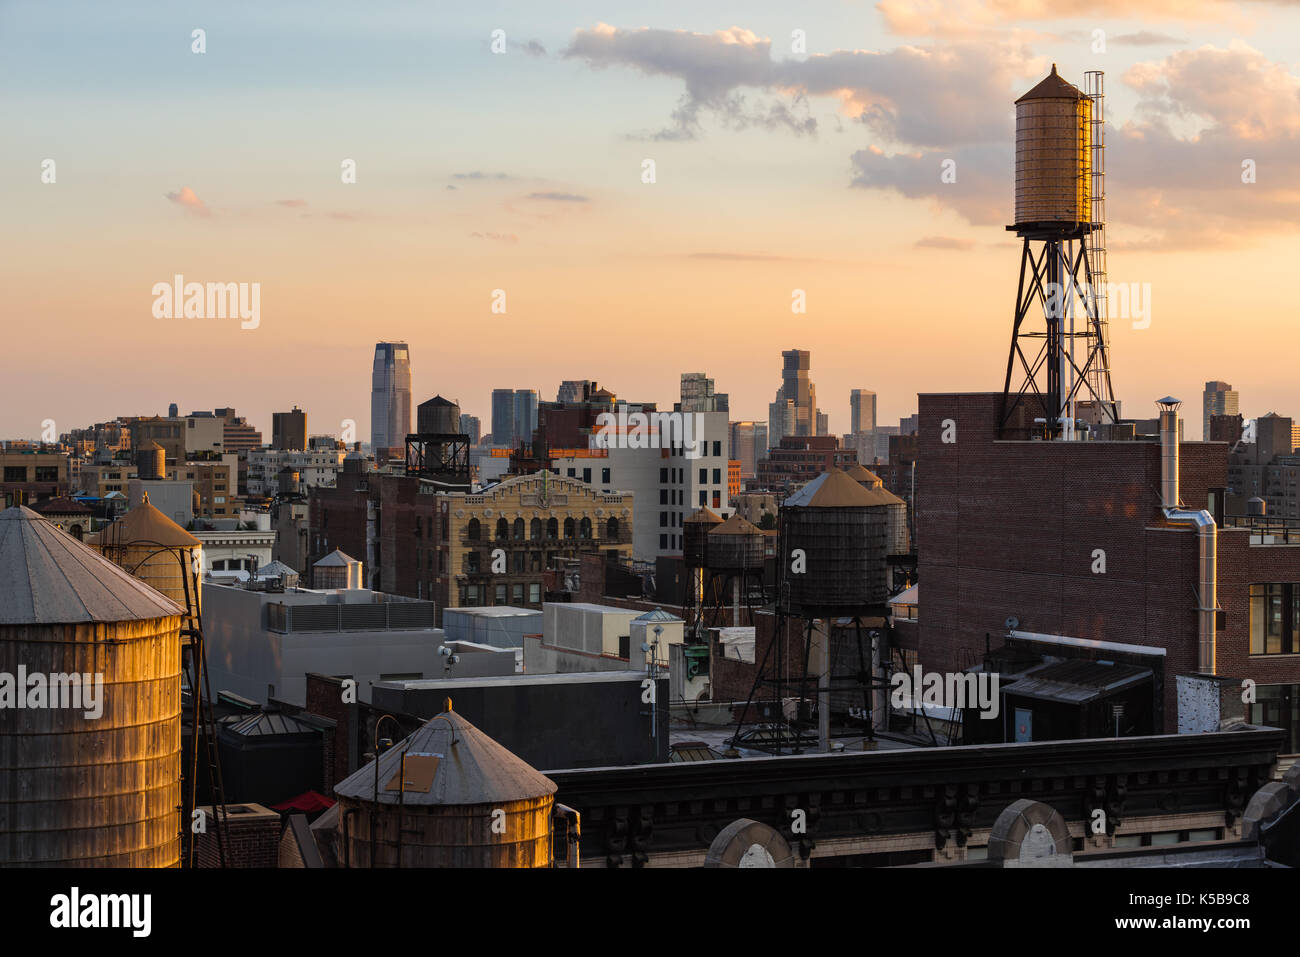 Summer sunset with Chelsea rooftops, and water towers. Manhattan, New York City - Stock Image